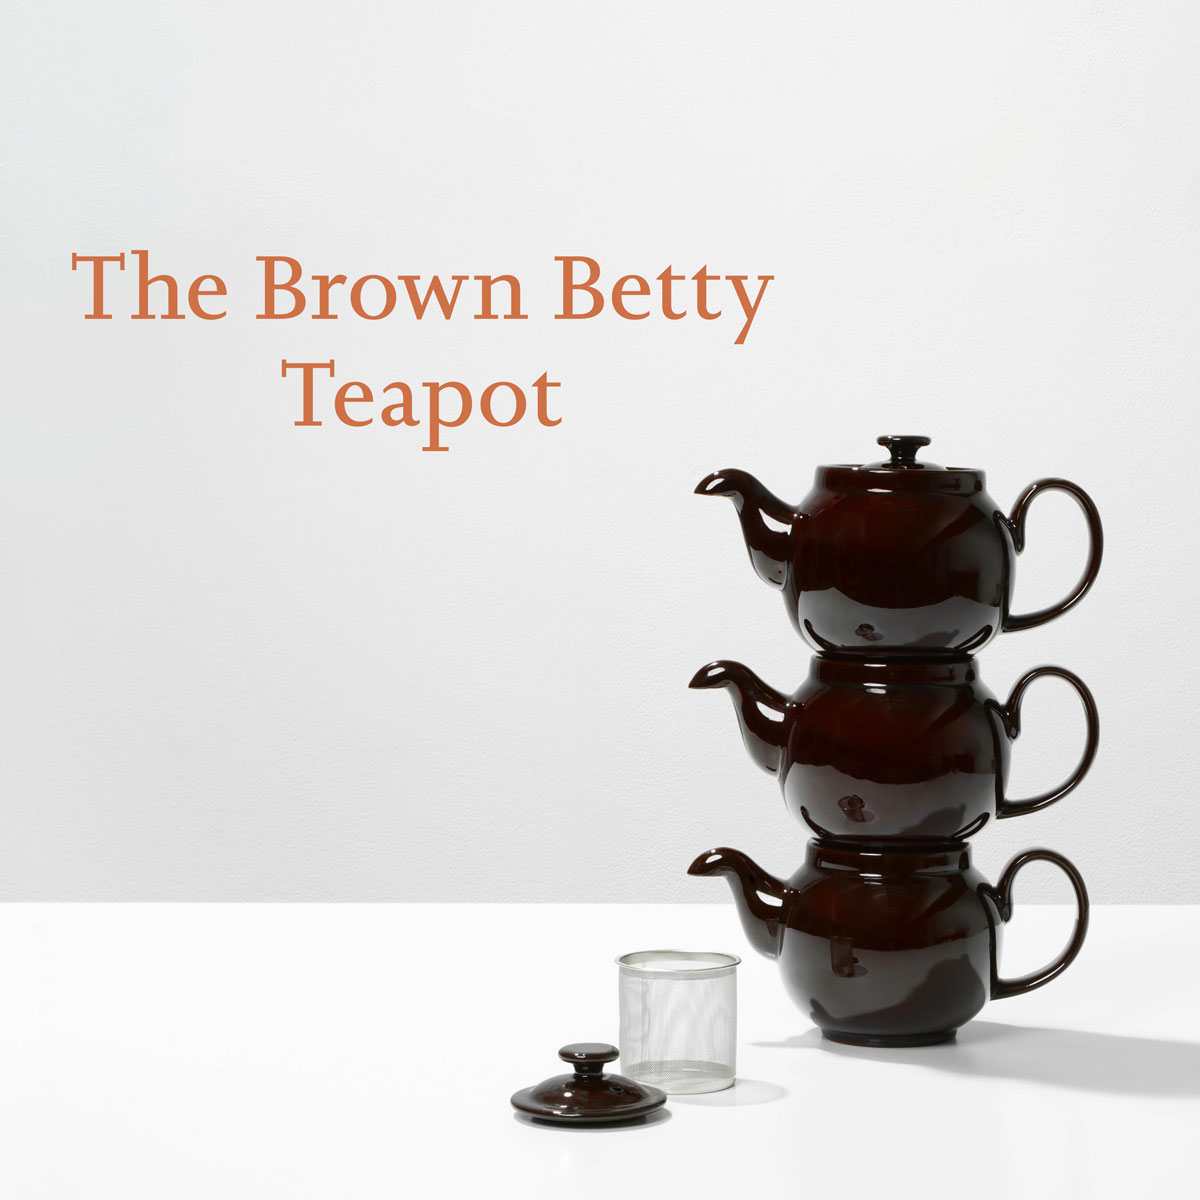 BROWN BETTY TEAPOT EXHIBITION